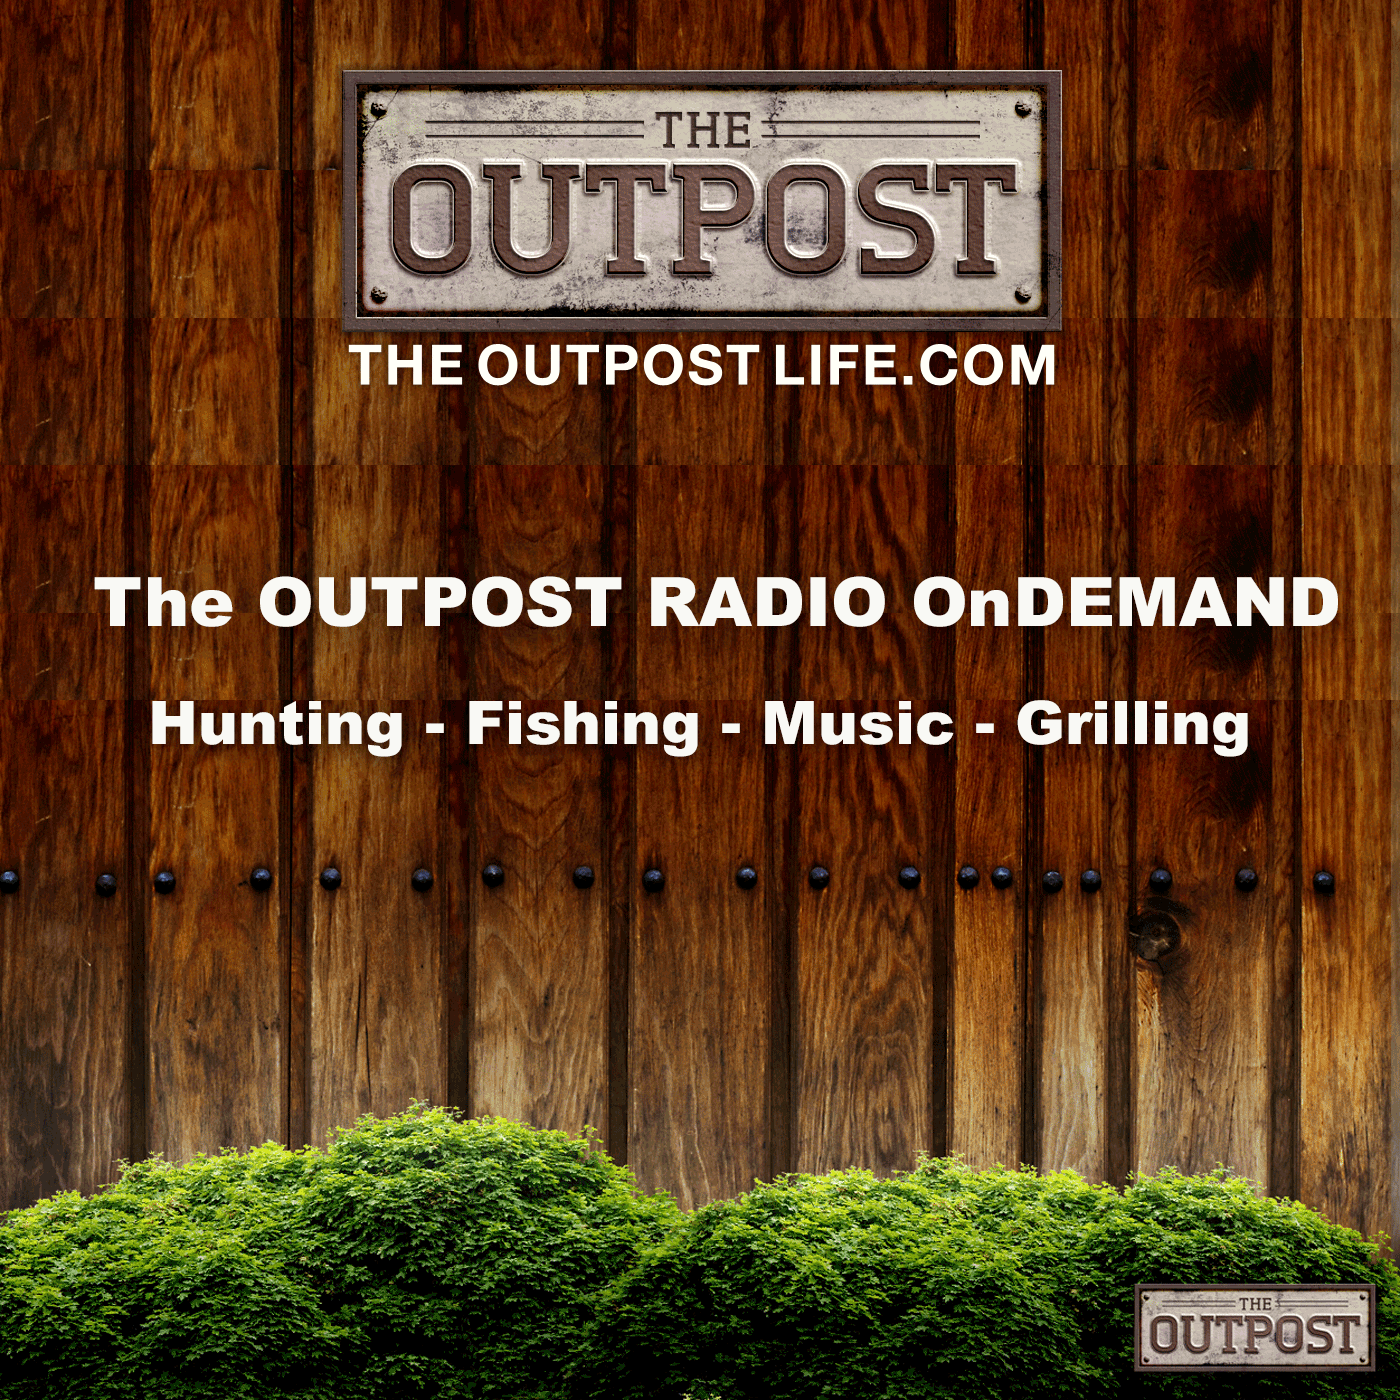 The Outpost Radio OnDemand